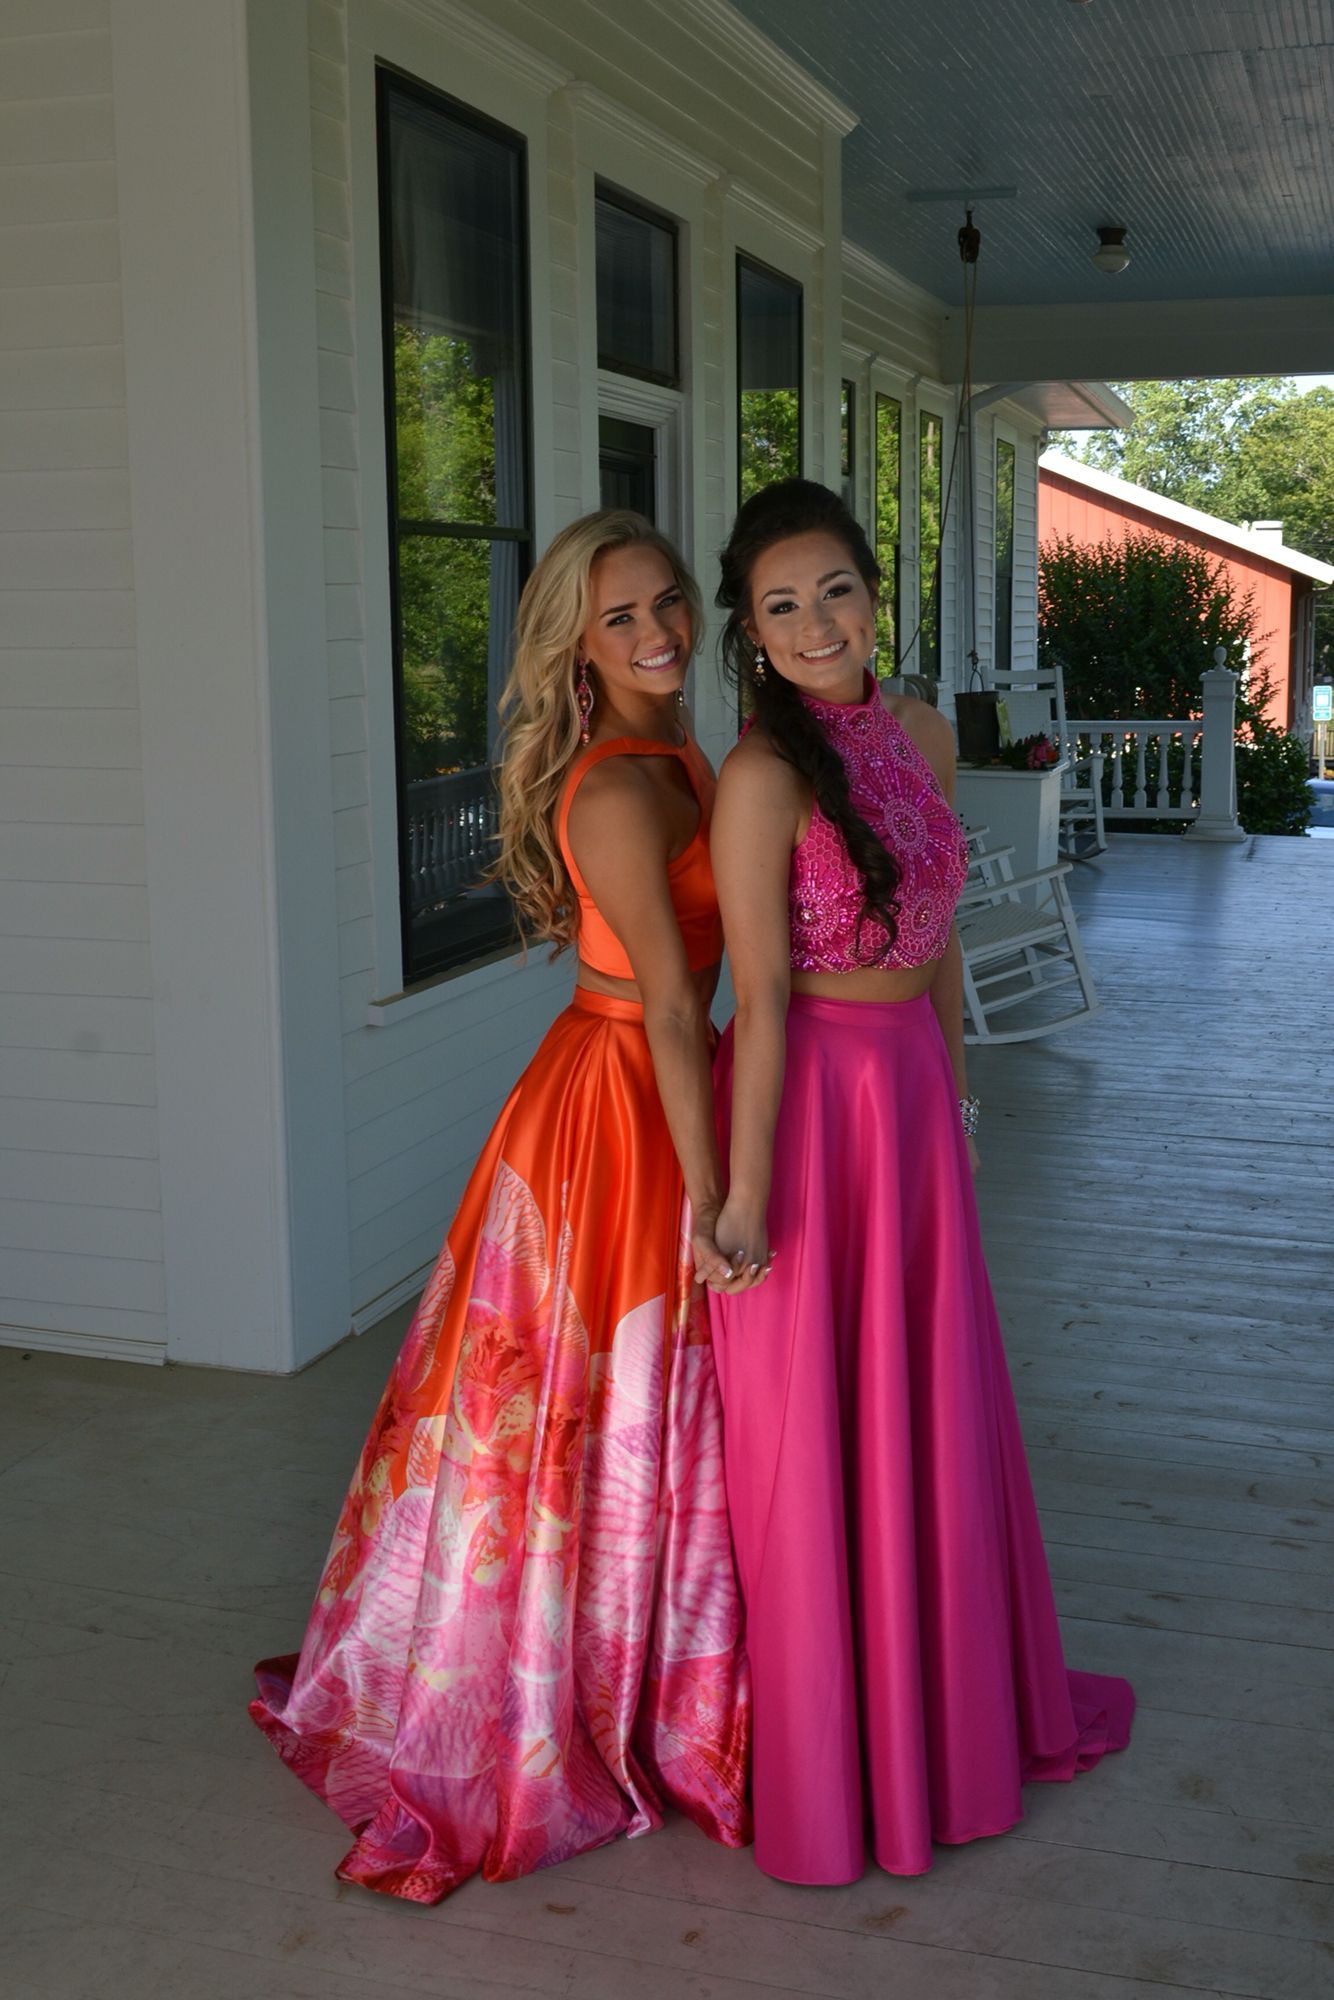 cute prom picture ideas for best friends   pixshark